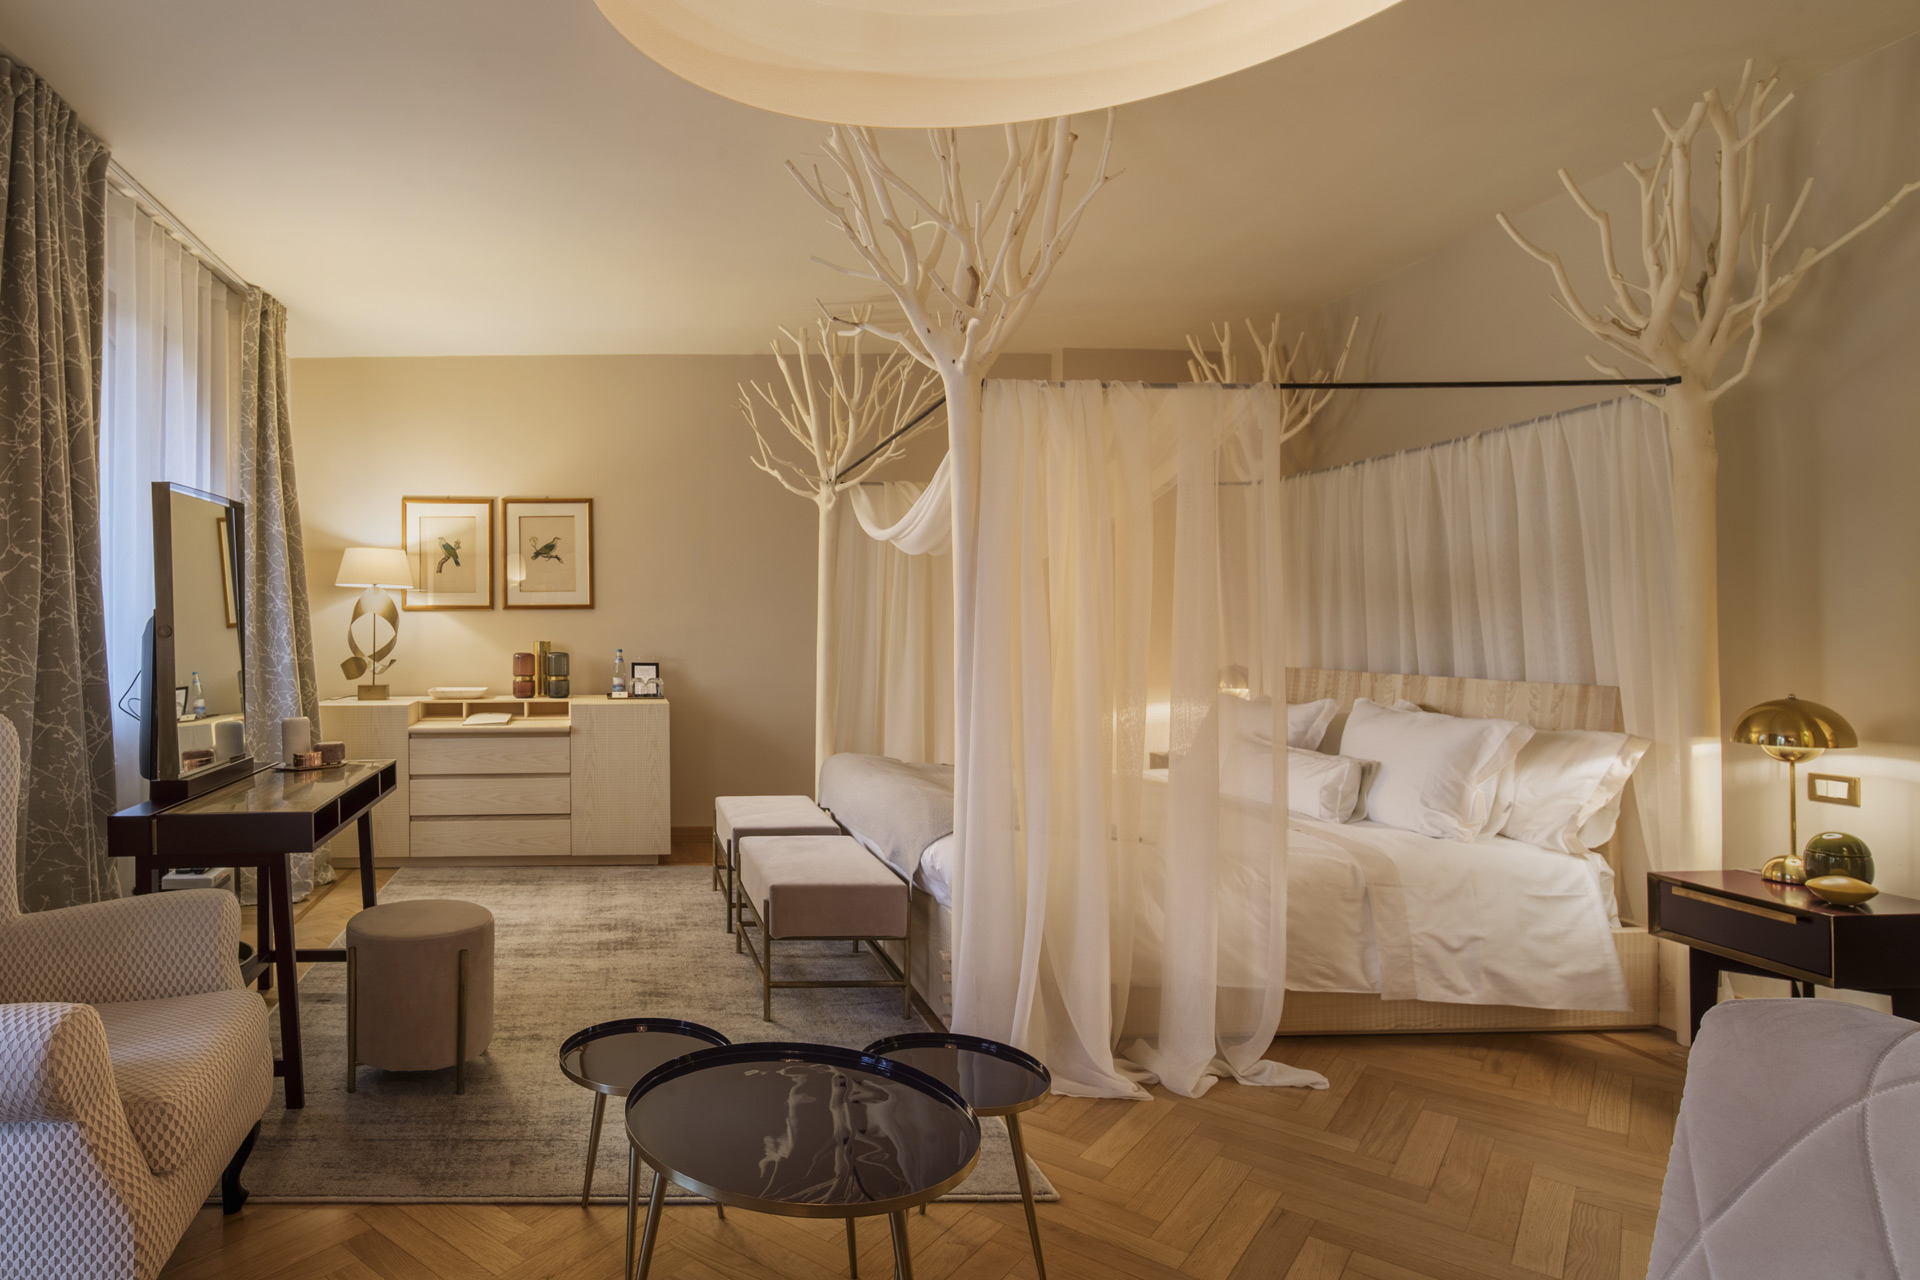 Four-poster bed in ash with posts in privet wood. Chest of drawers in ash